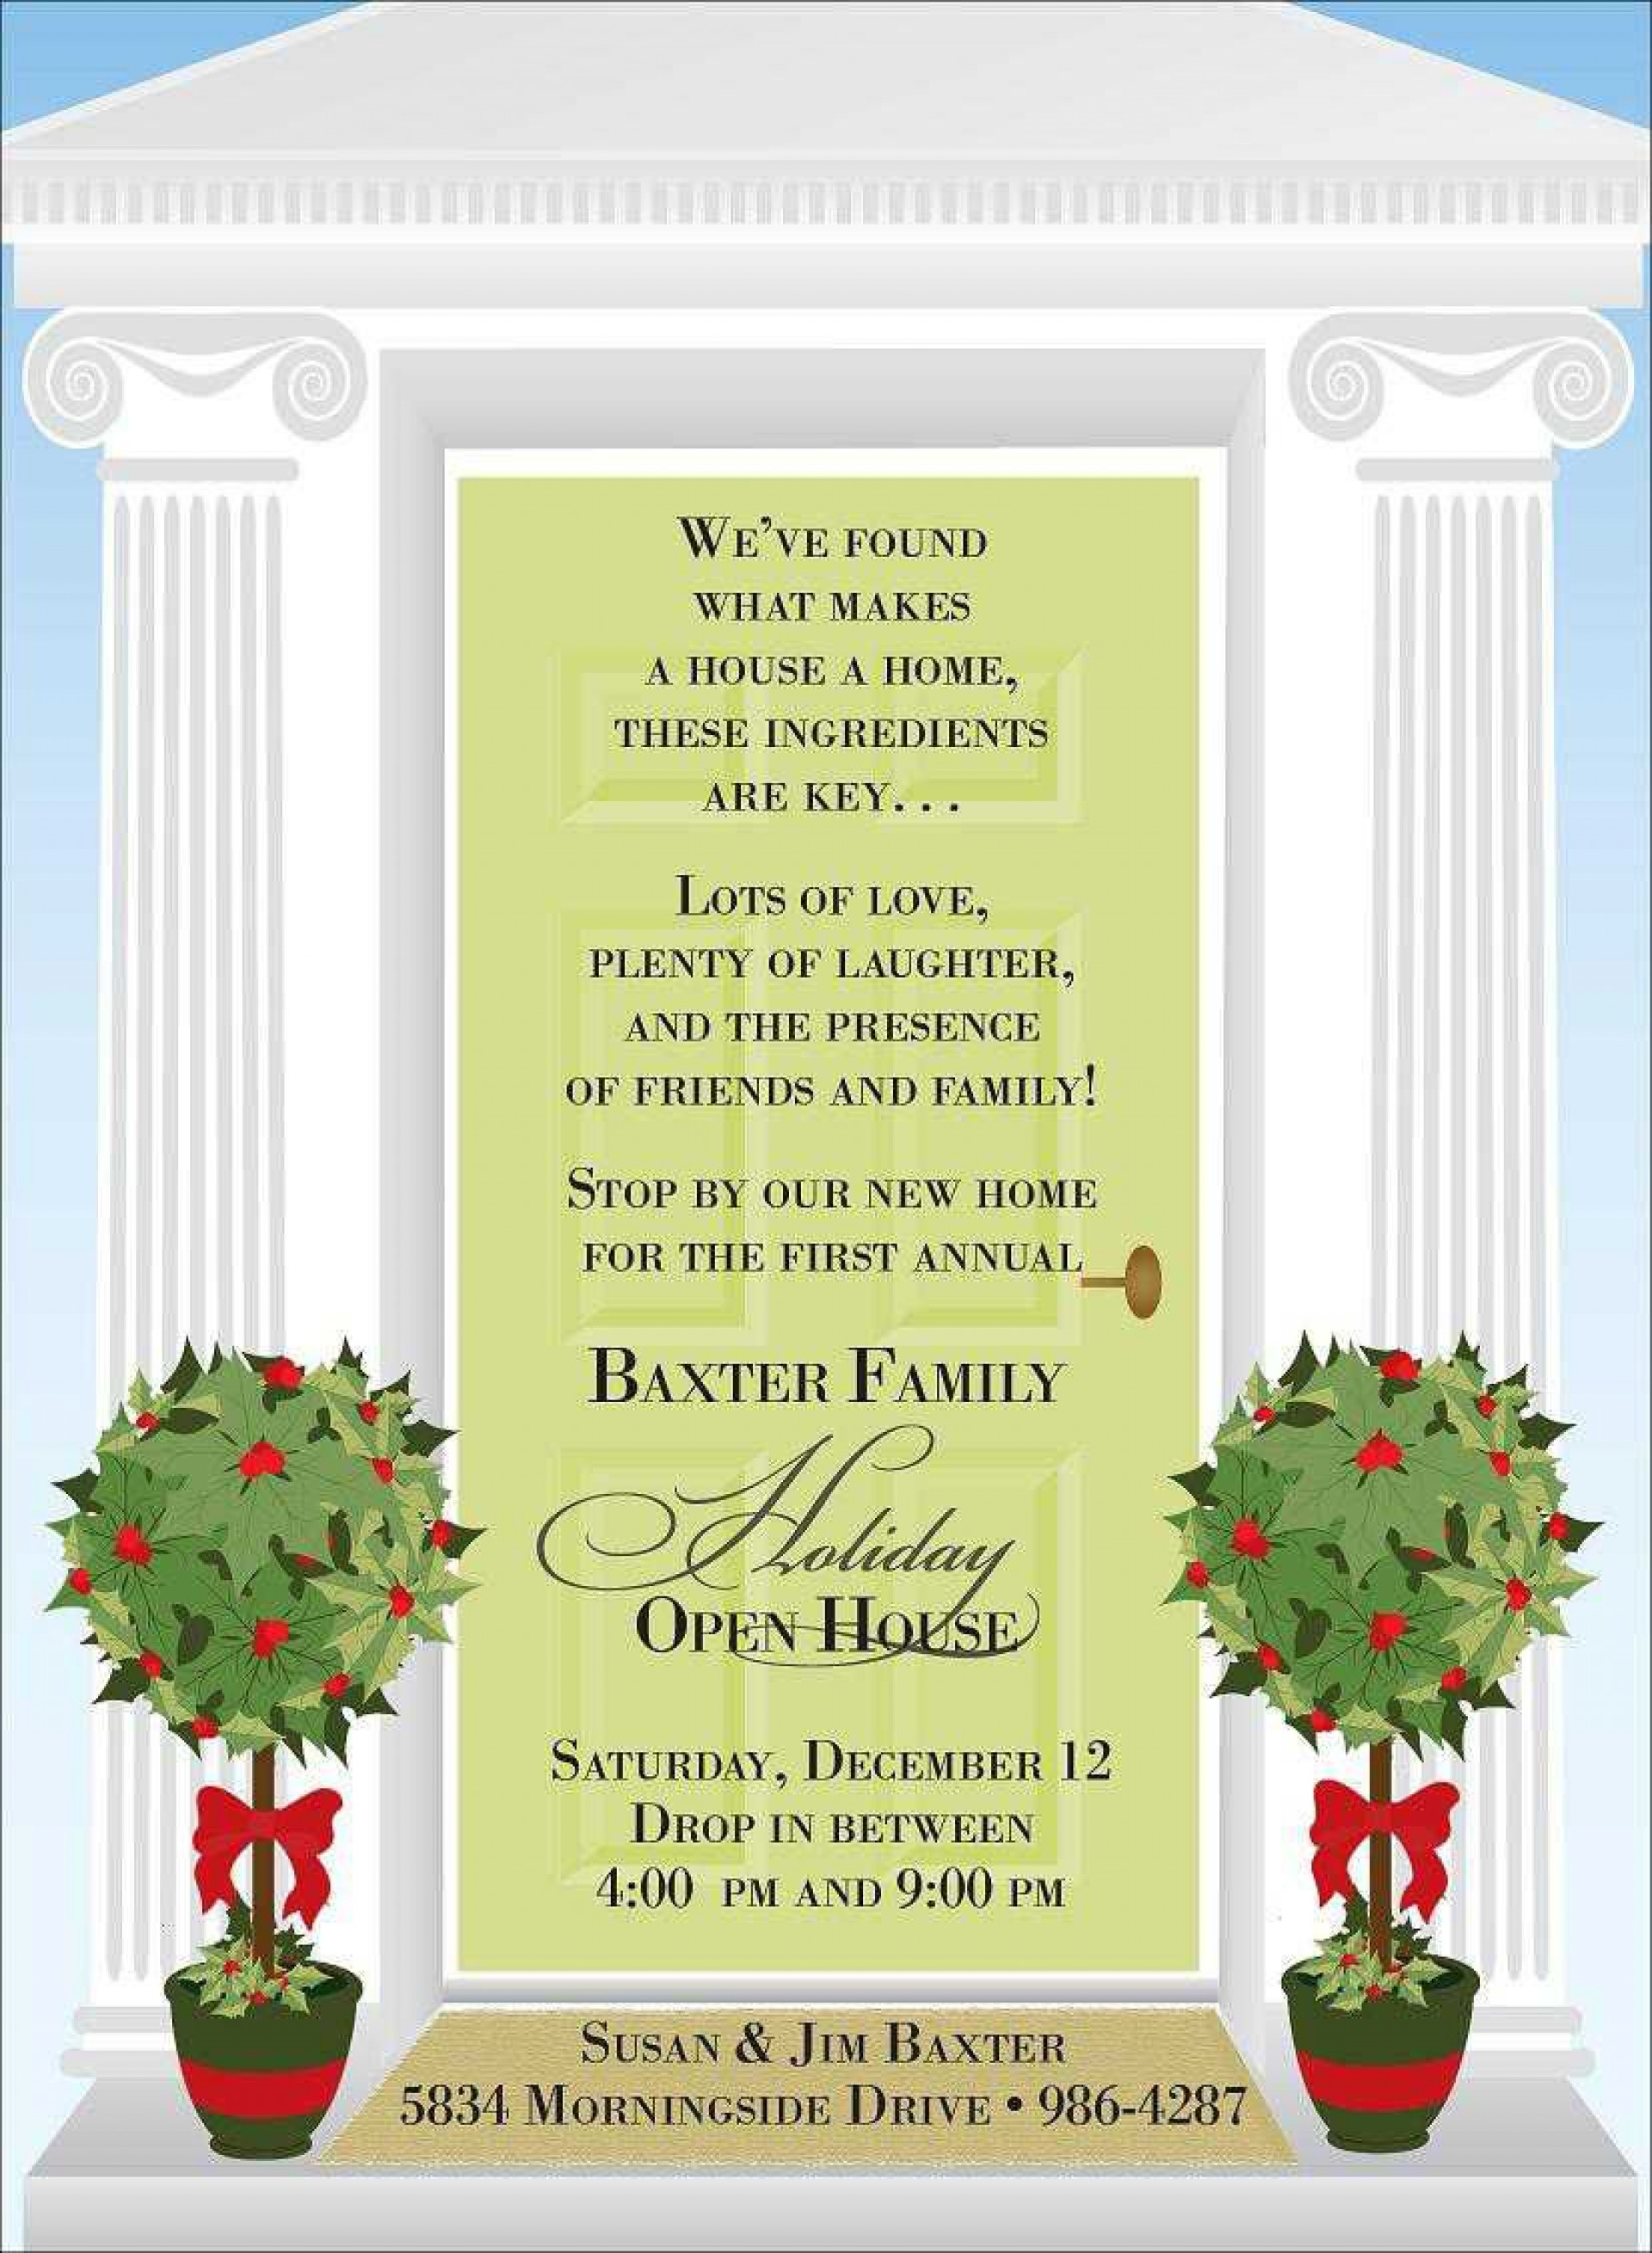 007 Formidable Holiday Open House Invitation Template Concept  Christma Free Printable Wording Idea1920